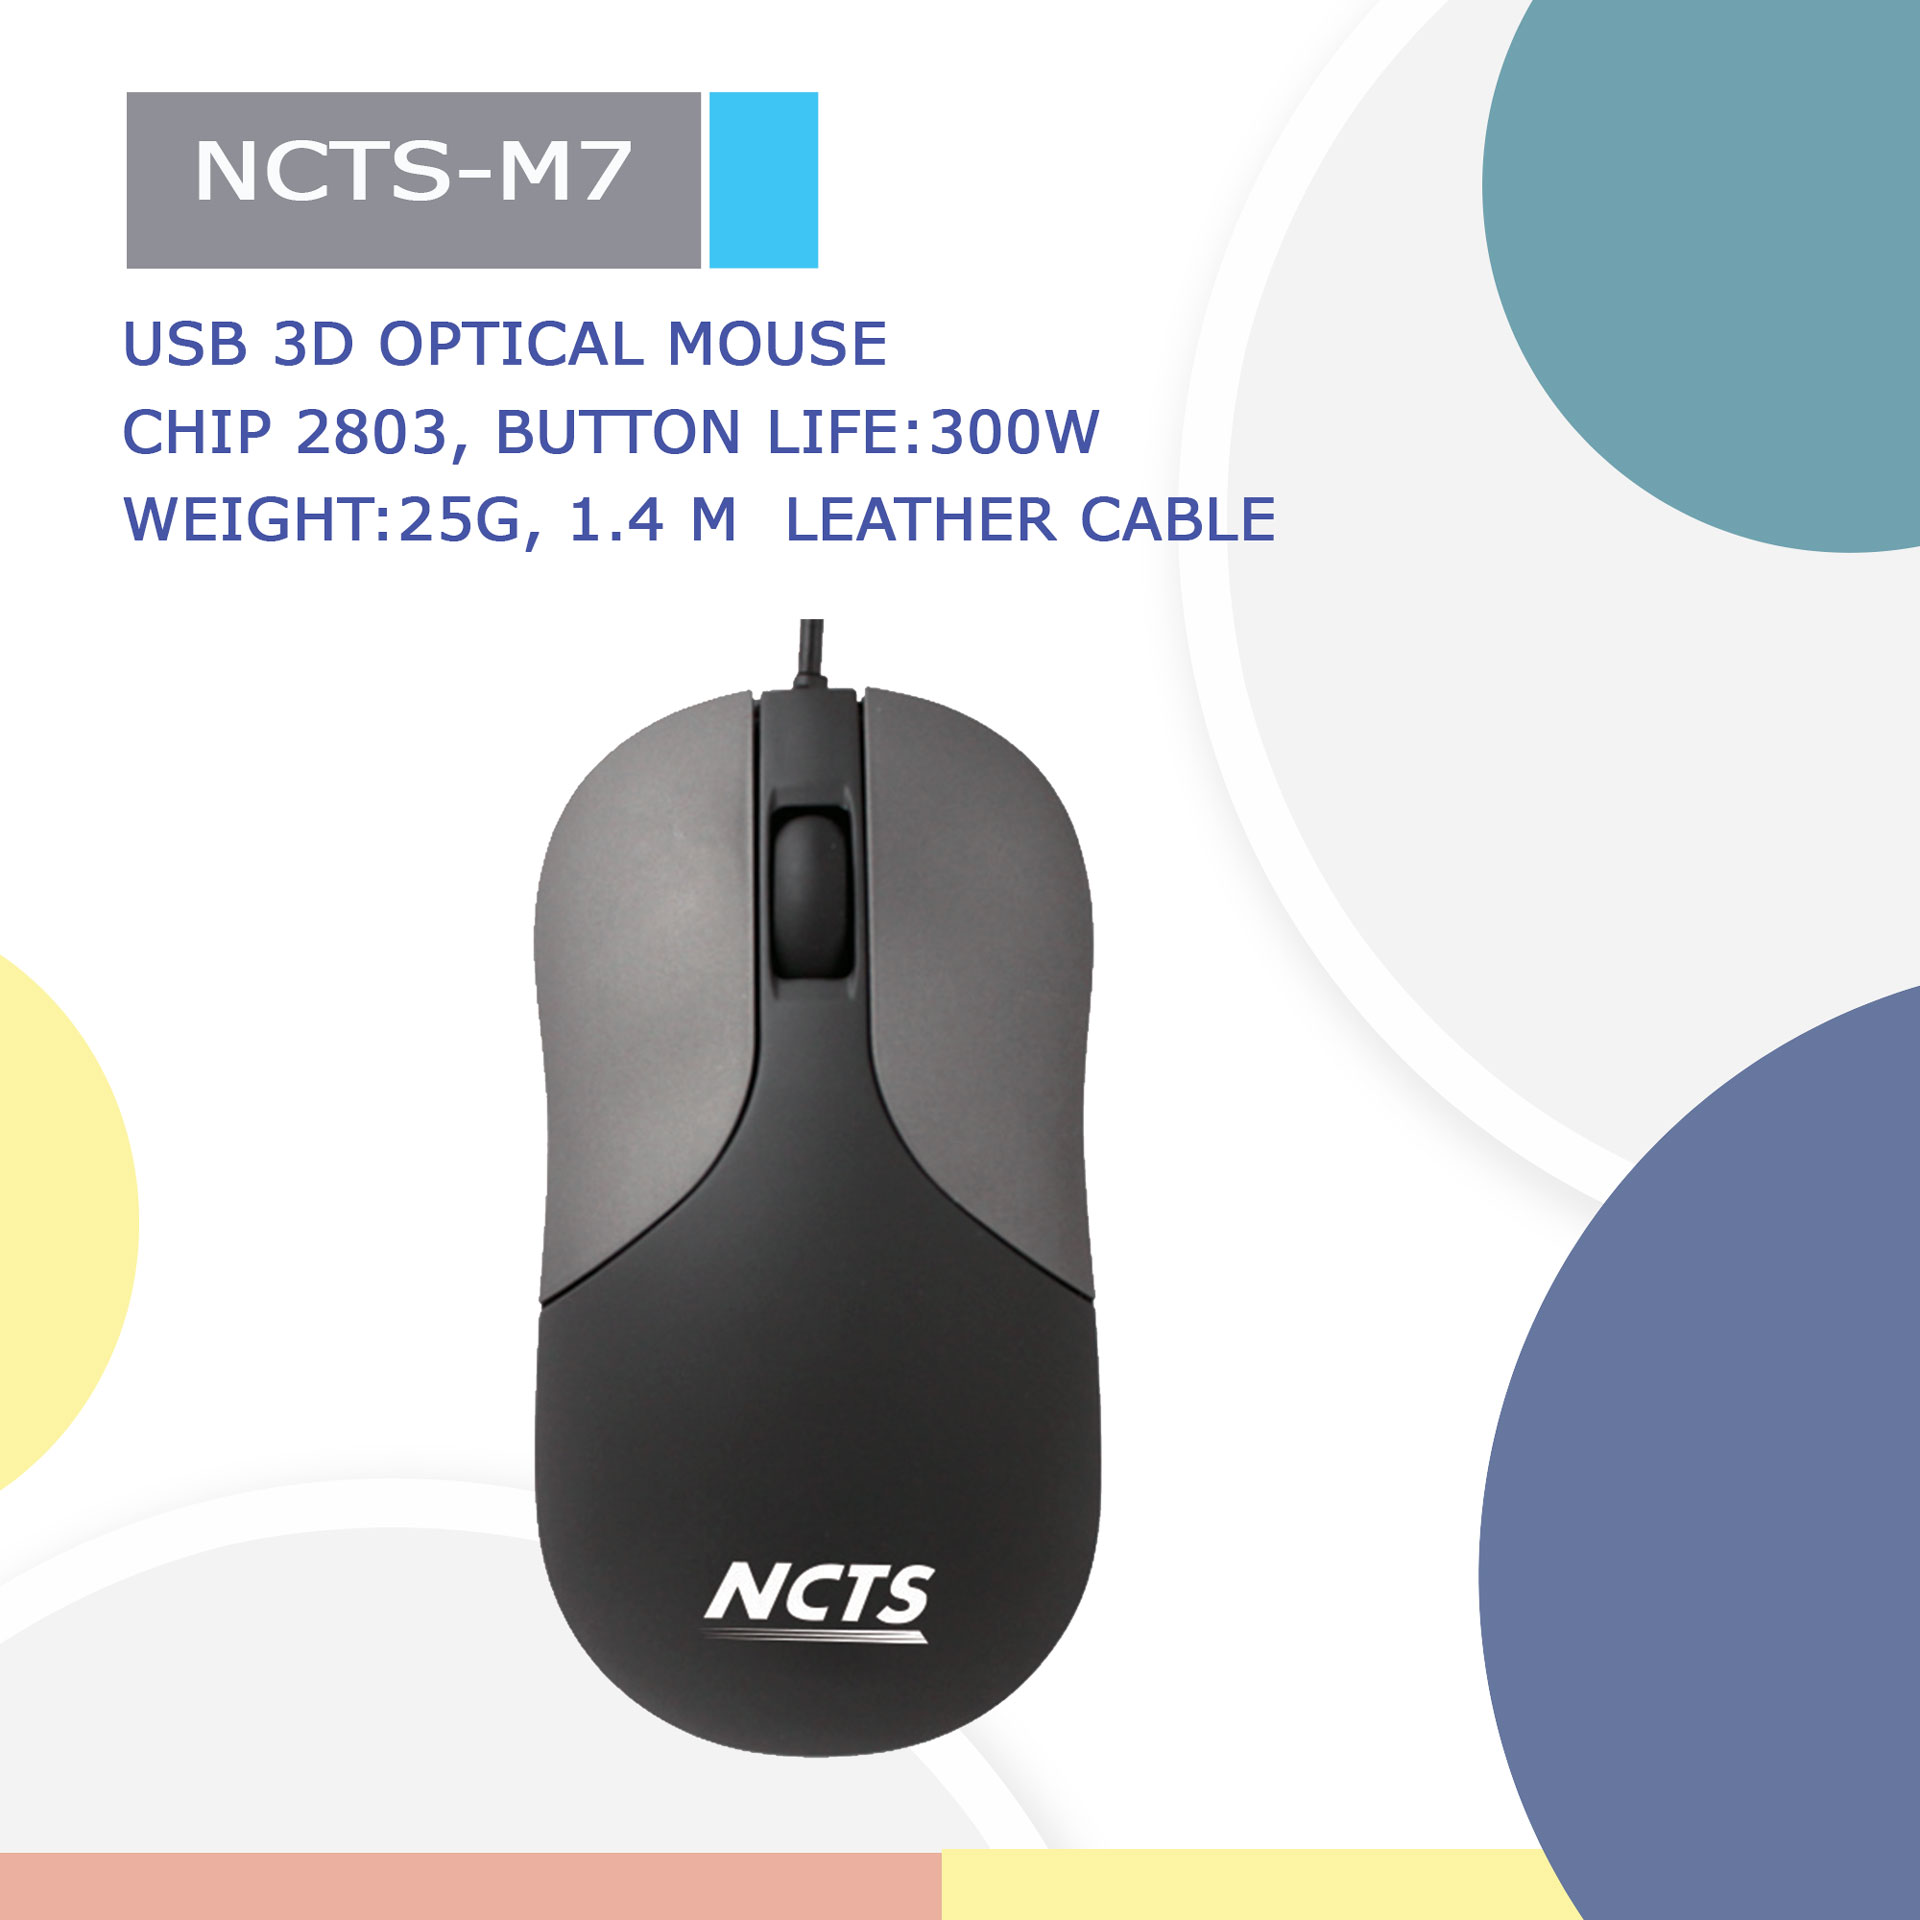 NCTS-M7